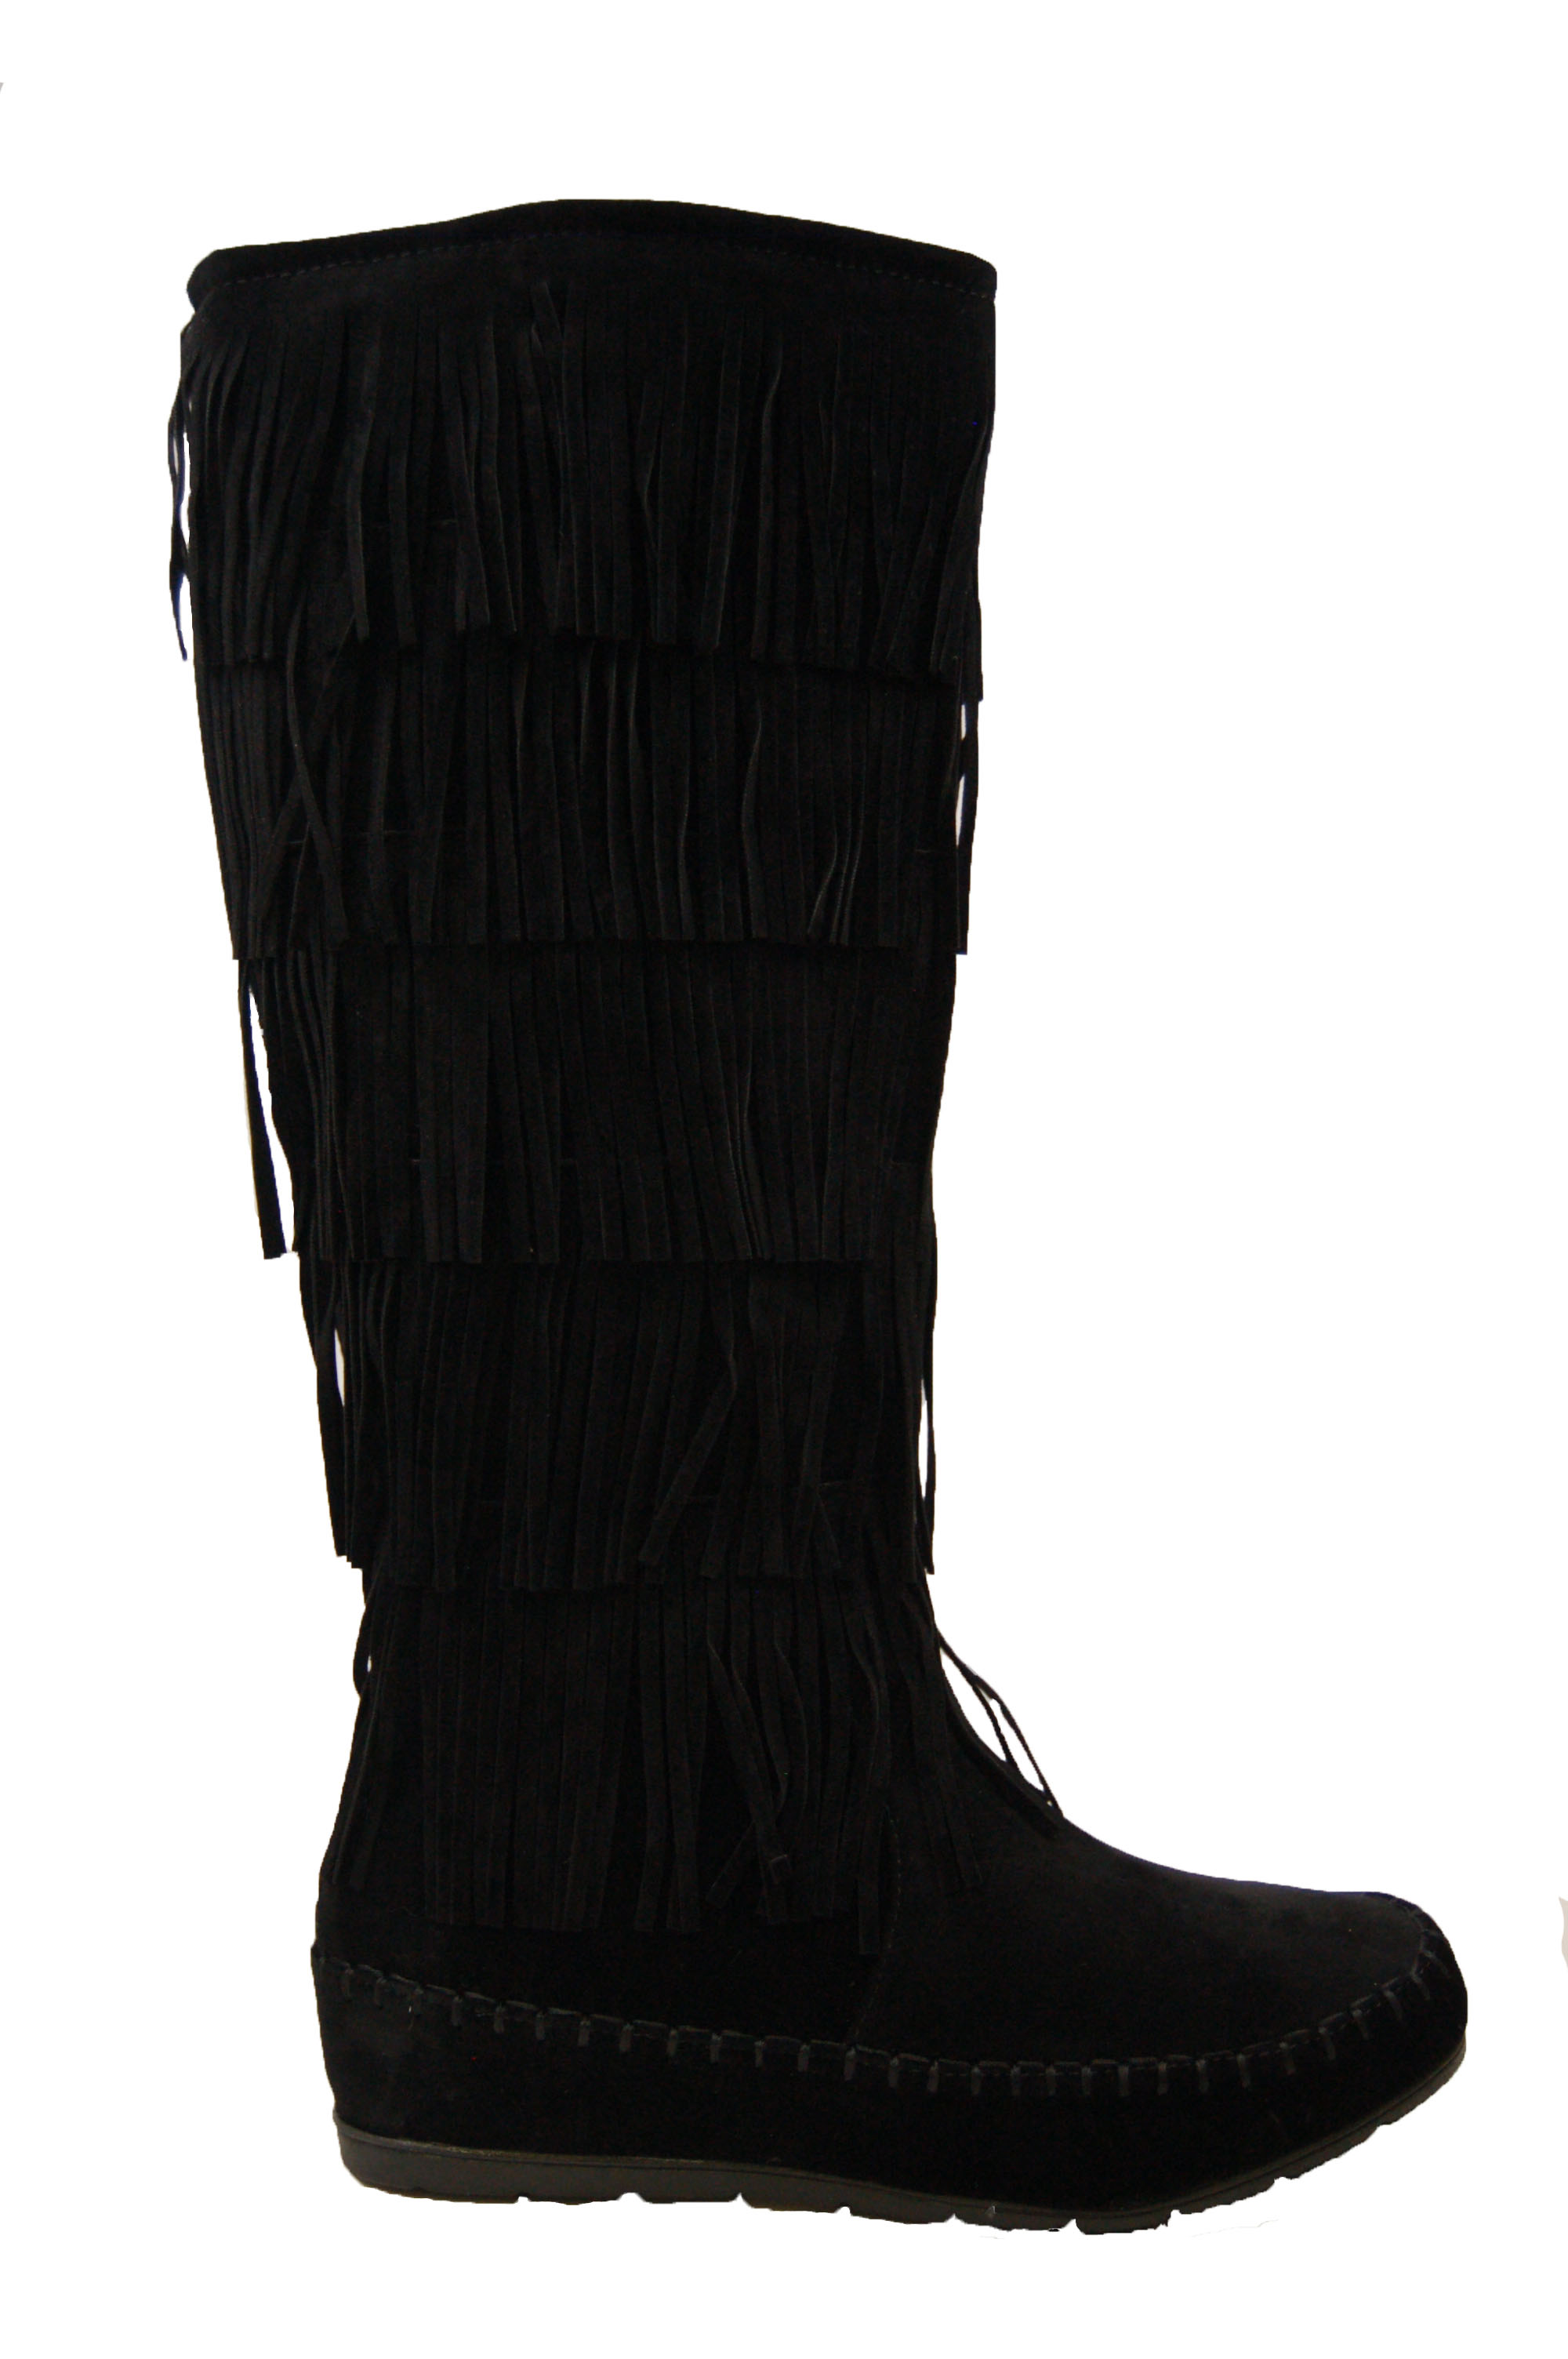 0674bcf57021 Women's Black Maddyyee Faux Suede Knee High Fringed five-layer ...